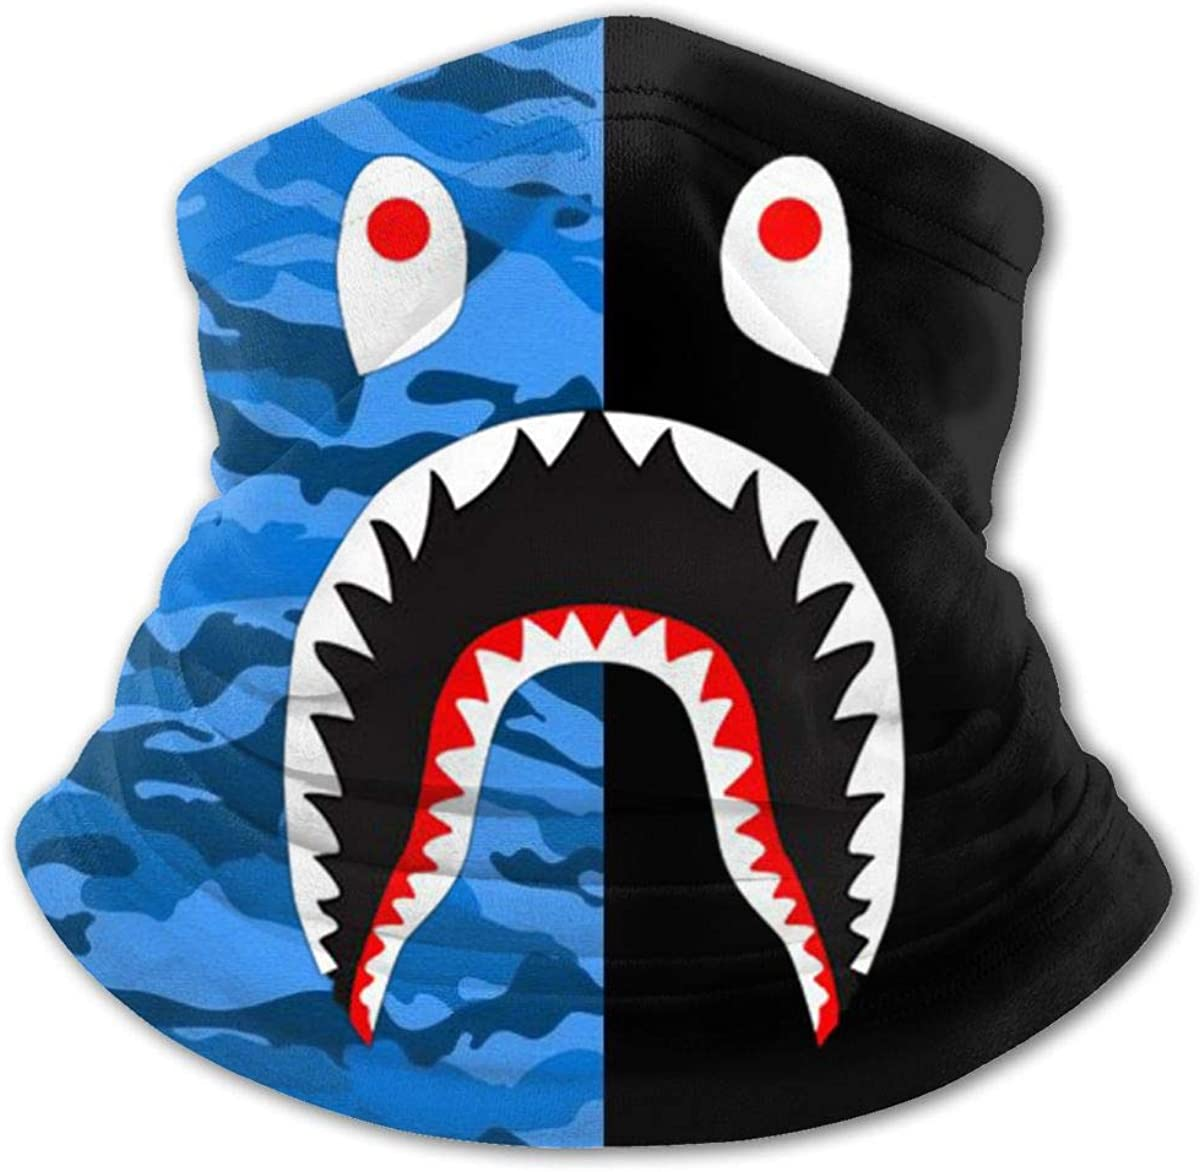 Bape Blood Shark Youth Face Mask Bandanas Neck Gaiter Headband Boy Girl Scarf Balaclava for Cycling Hiking Sport